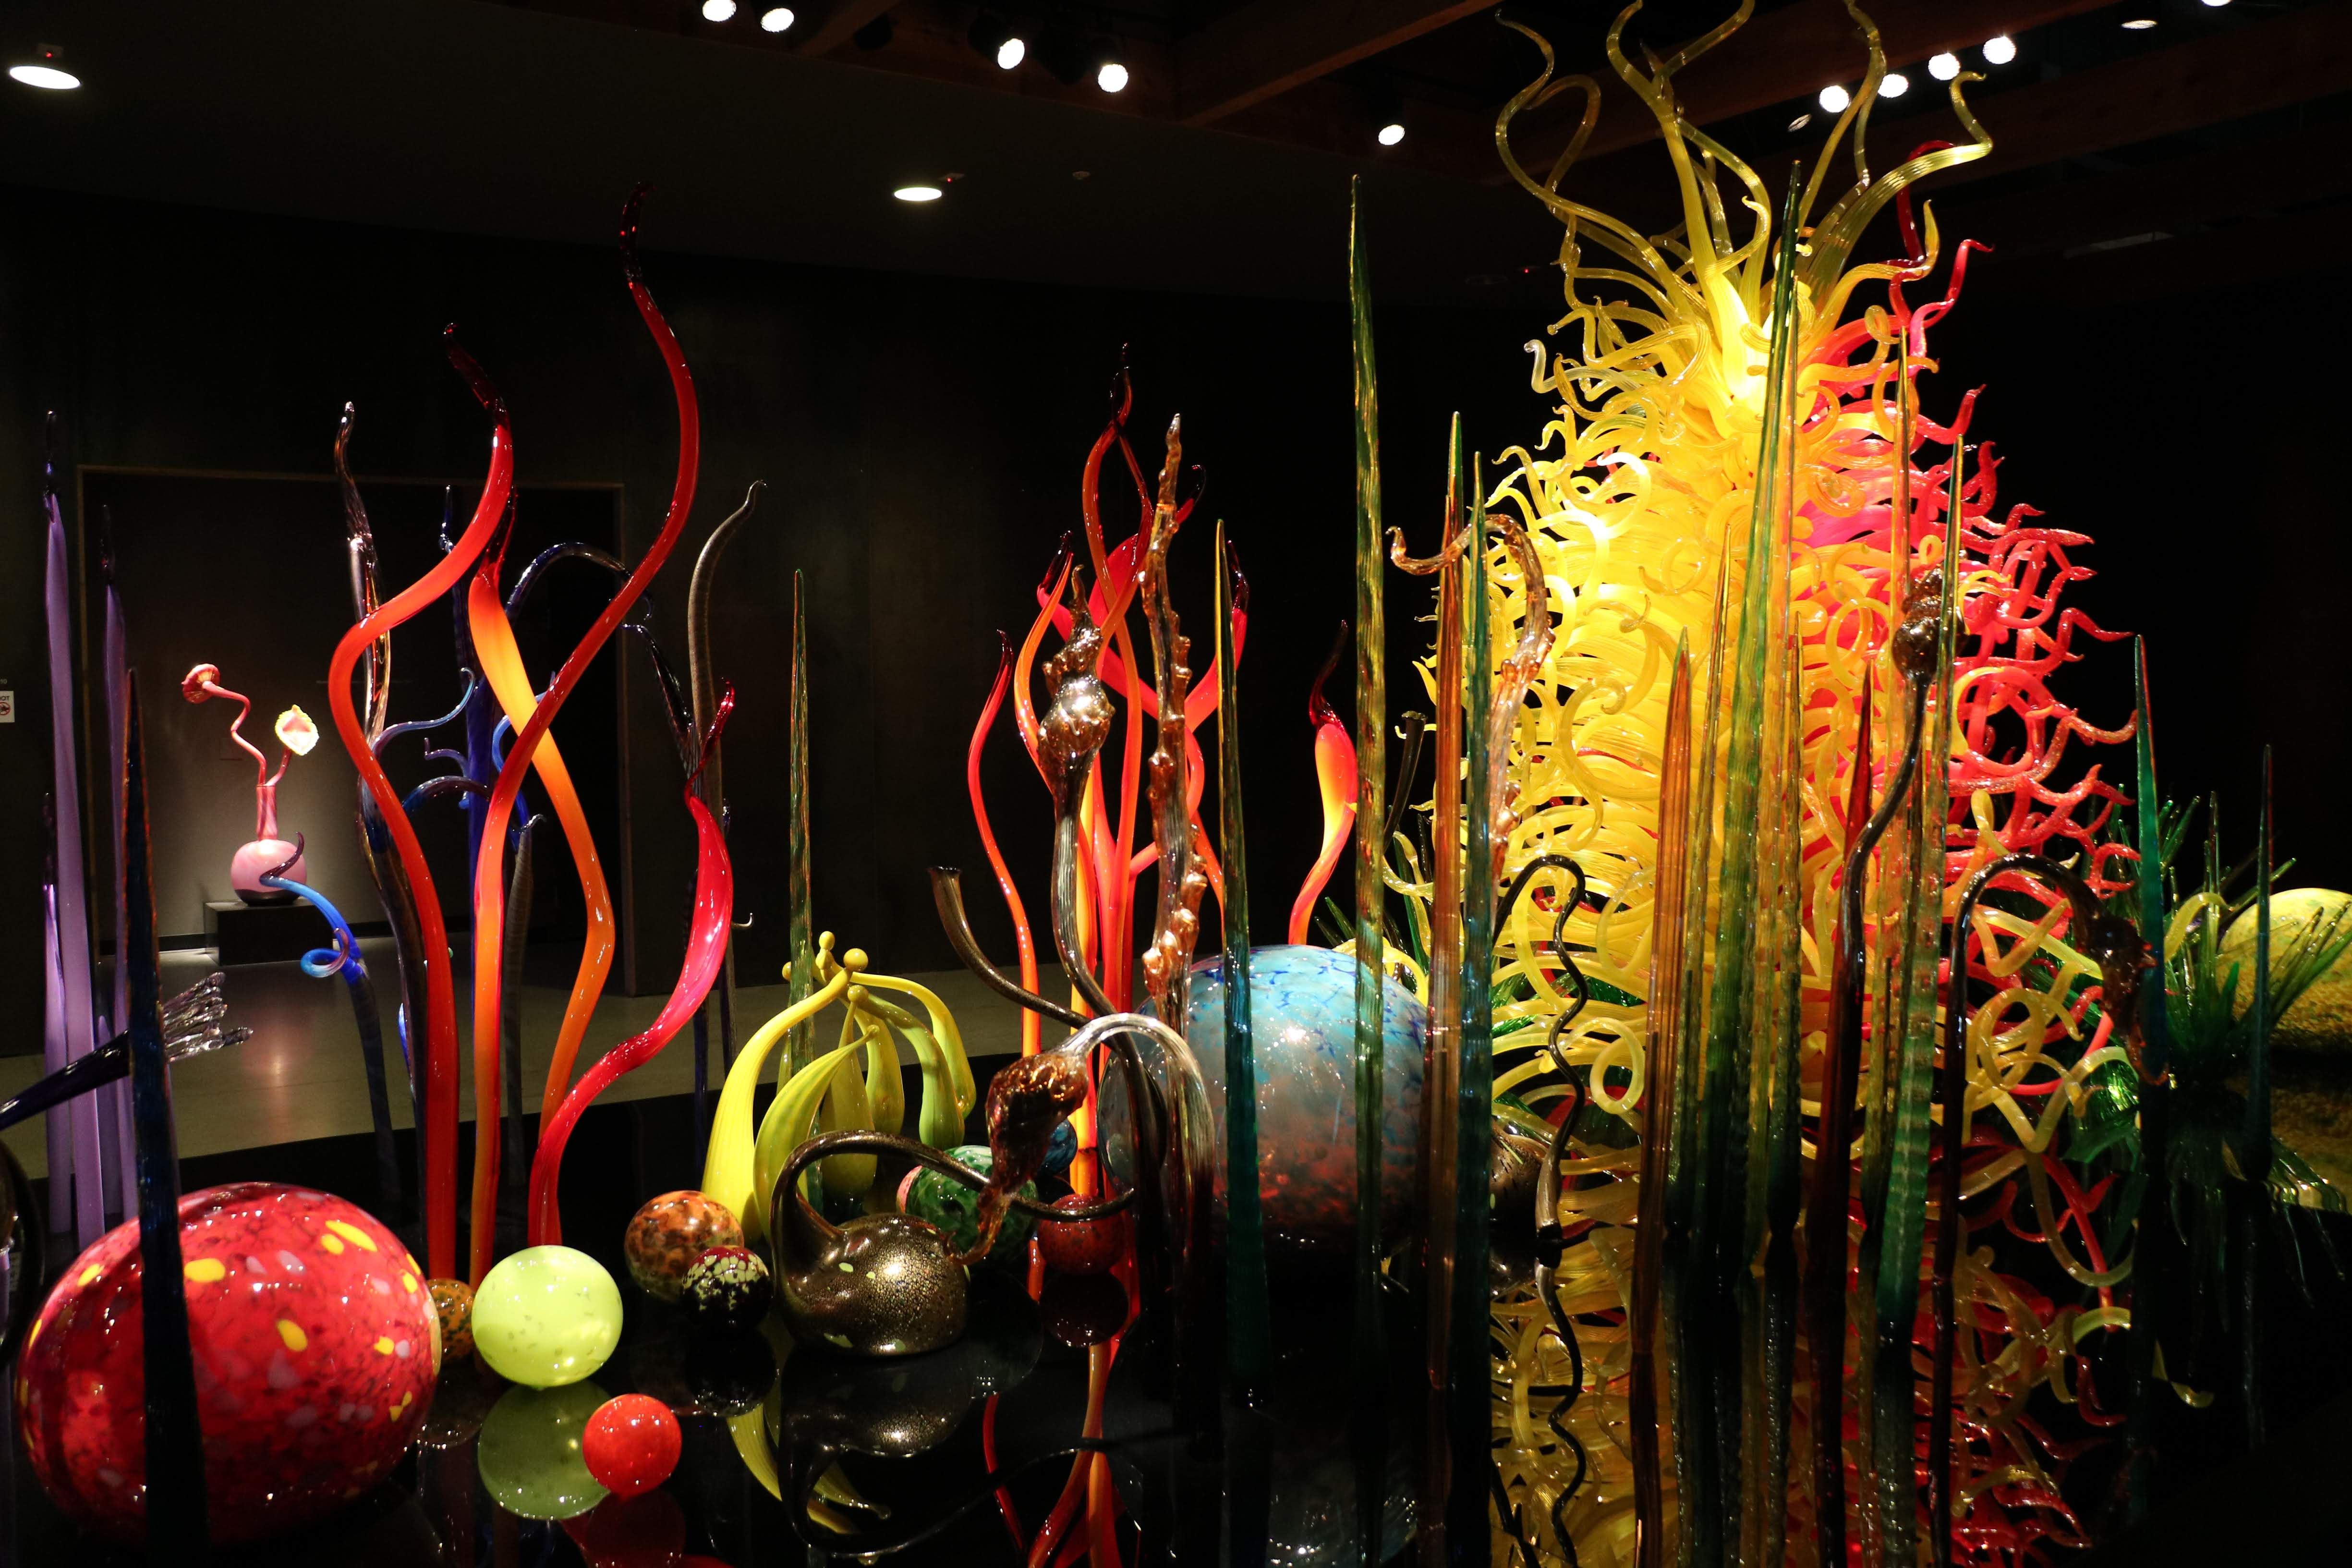 Mille Fiori- 2010 - Dale Chihuly collection